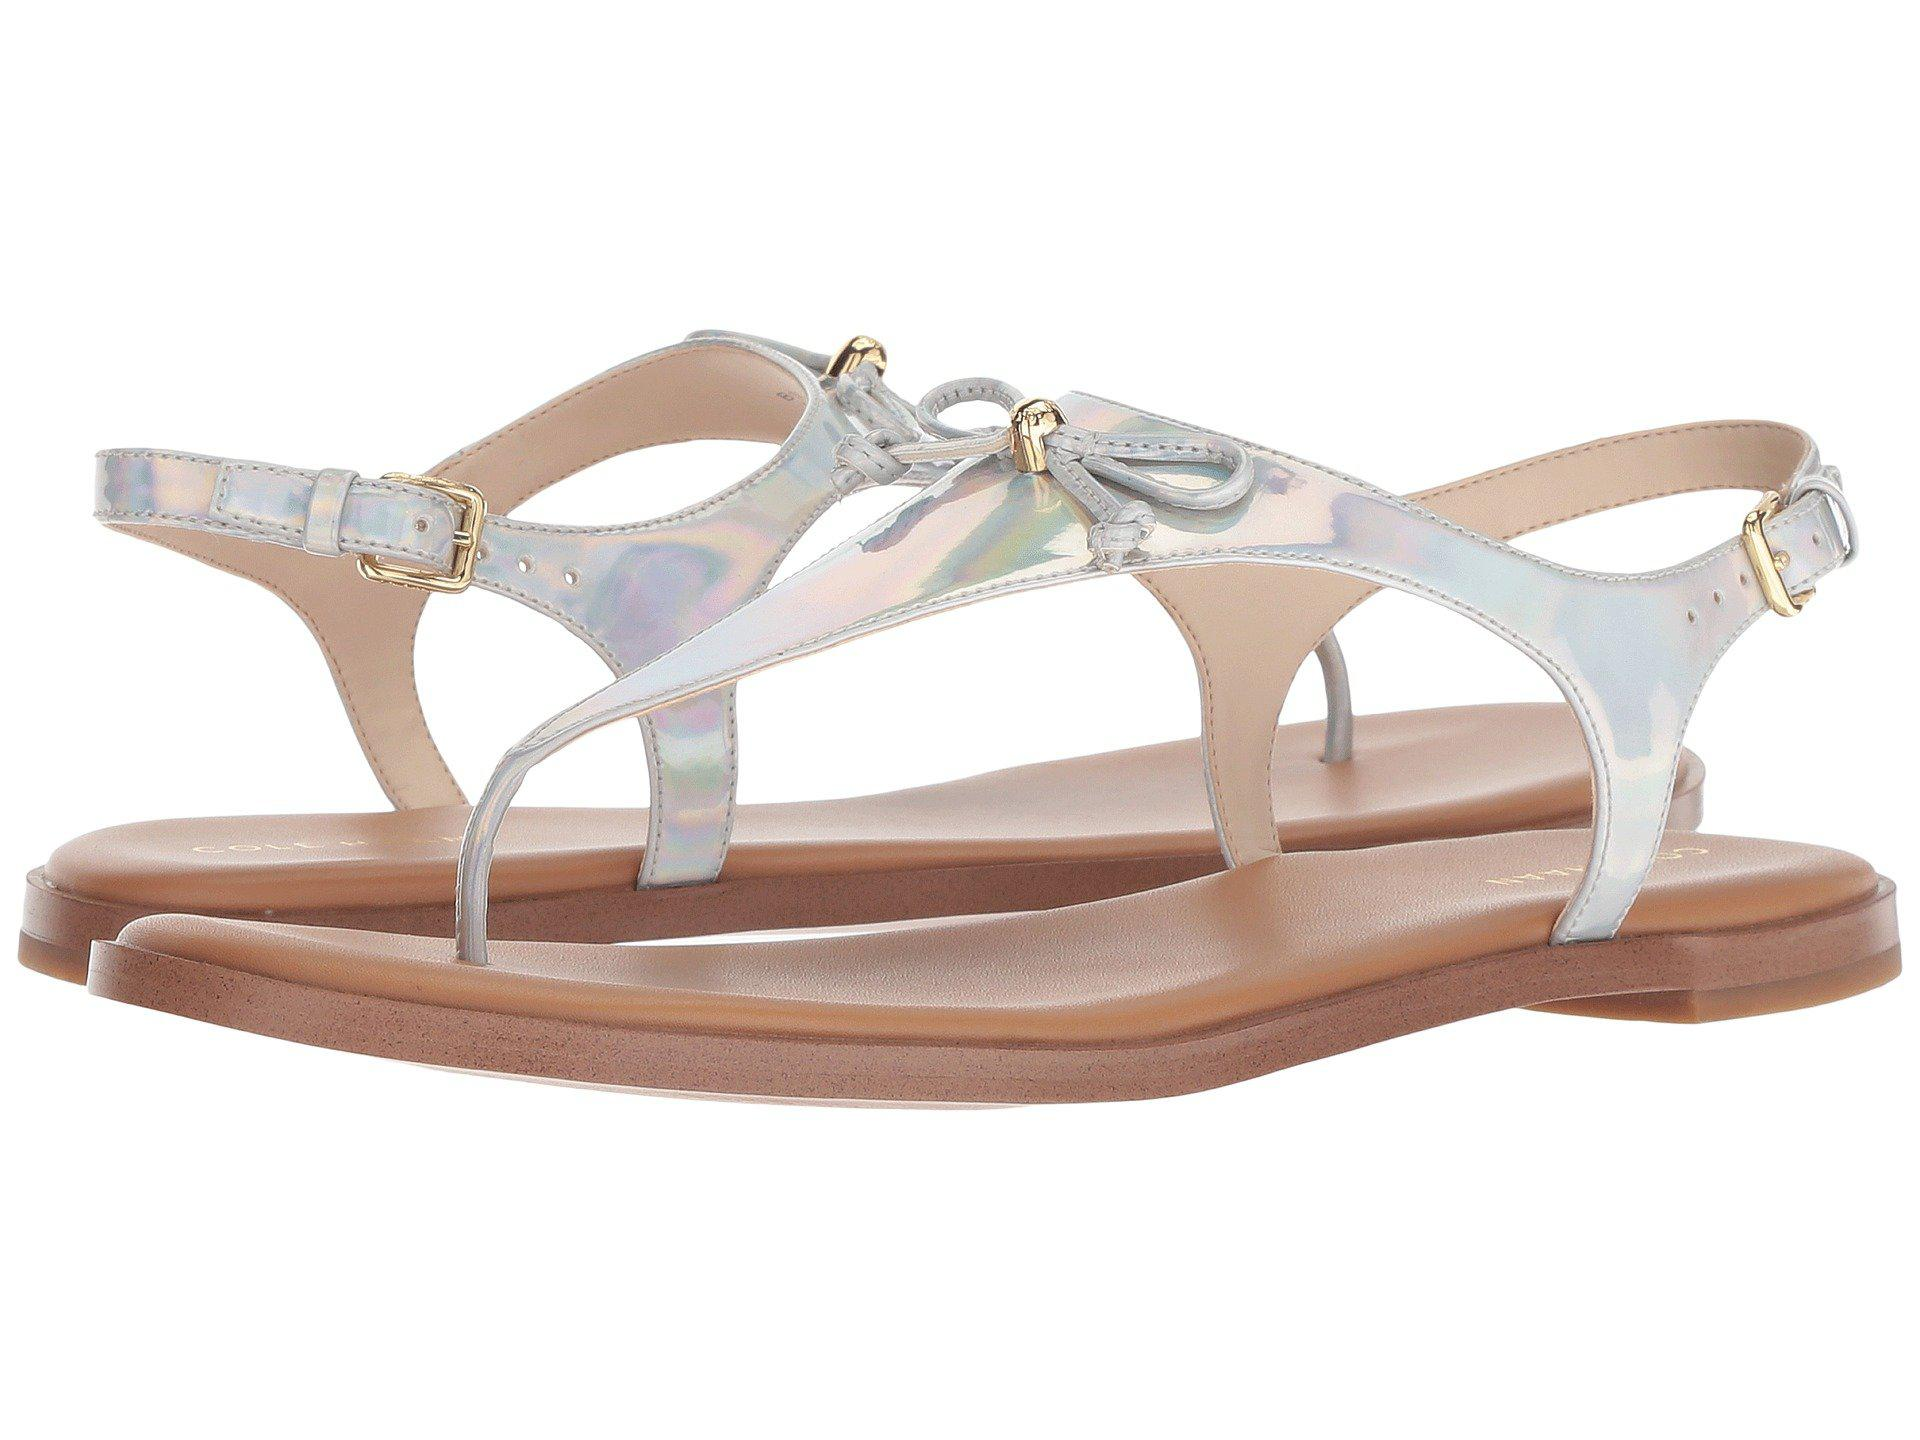 d819a095f79 Gallery. Previously sold at  6PM · Women s Thong Sandals ...